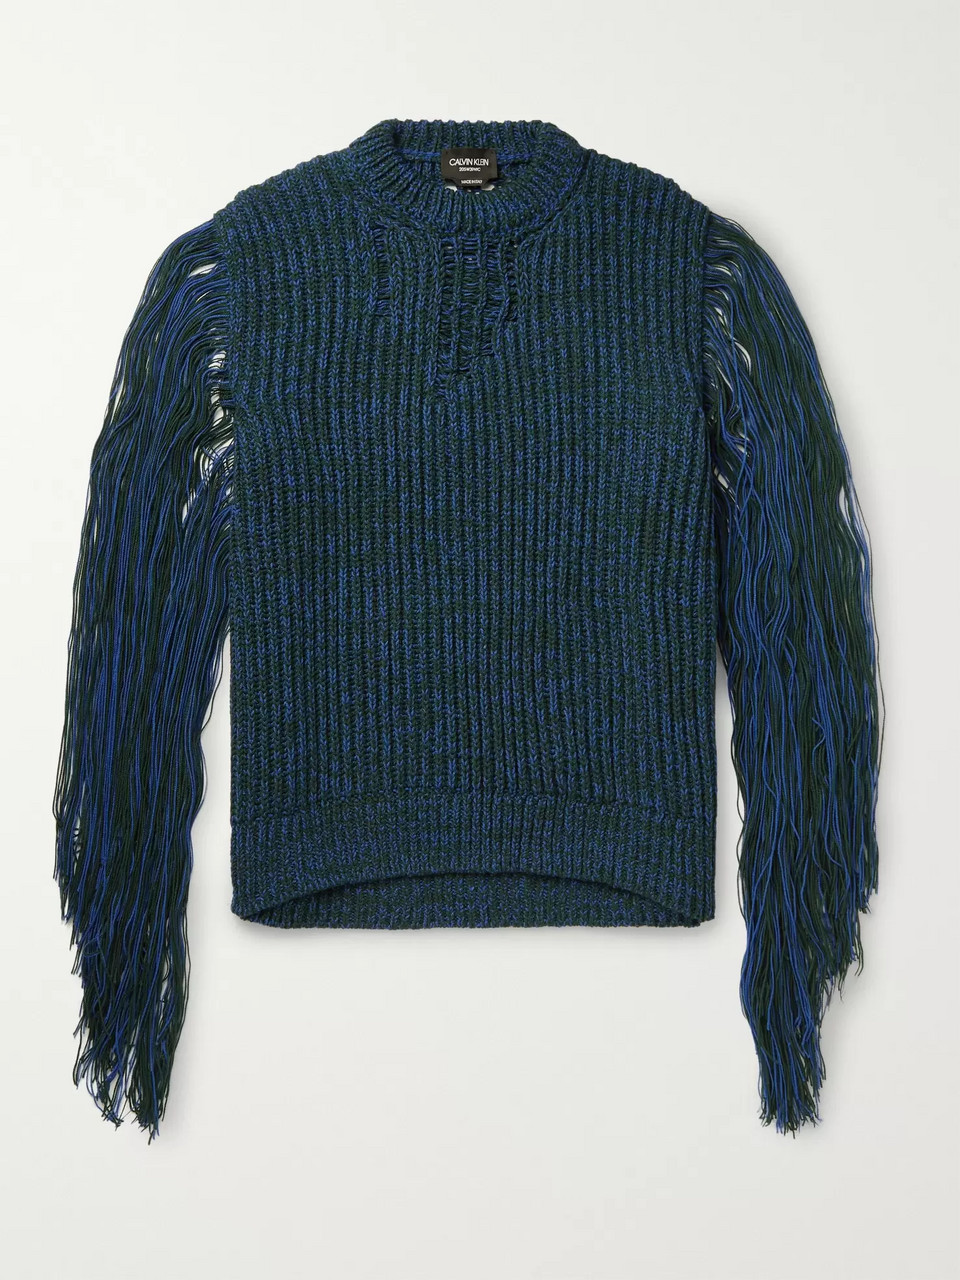 CALVIN KLEIN 205W39NYC Fringed Mélange Knitted Sweater